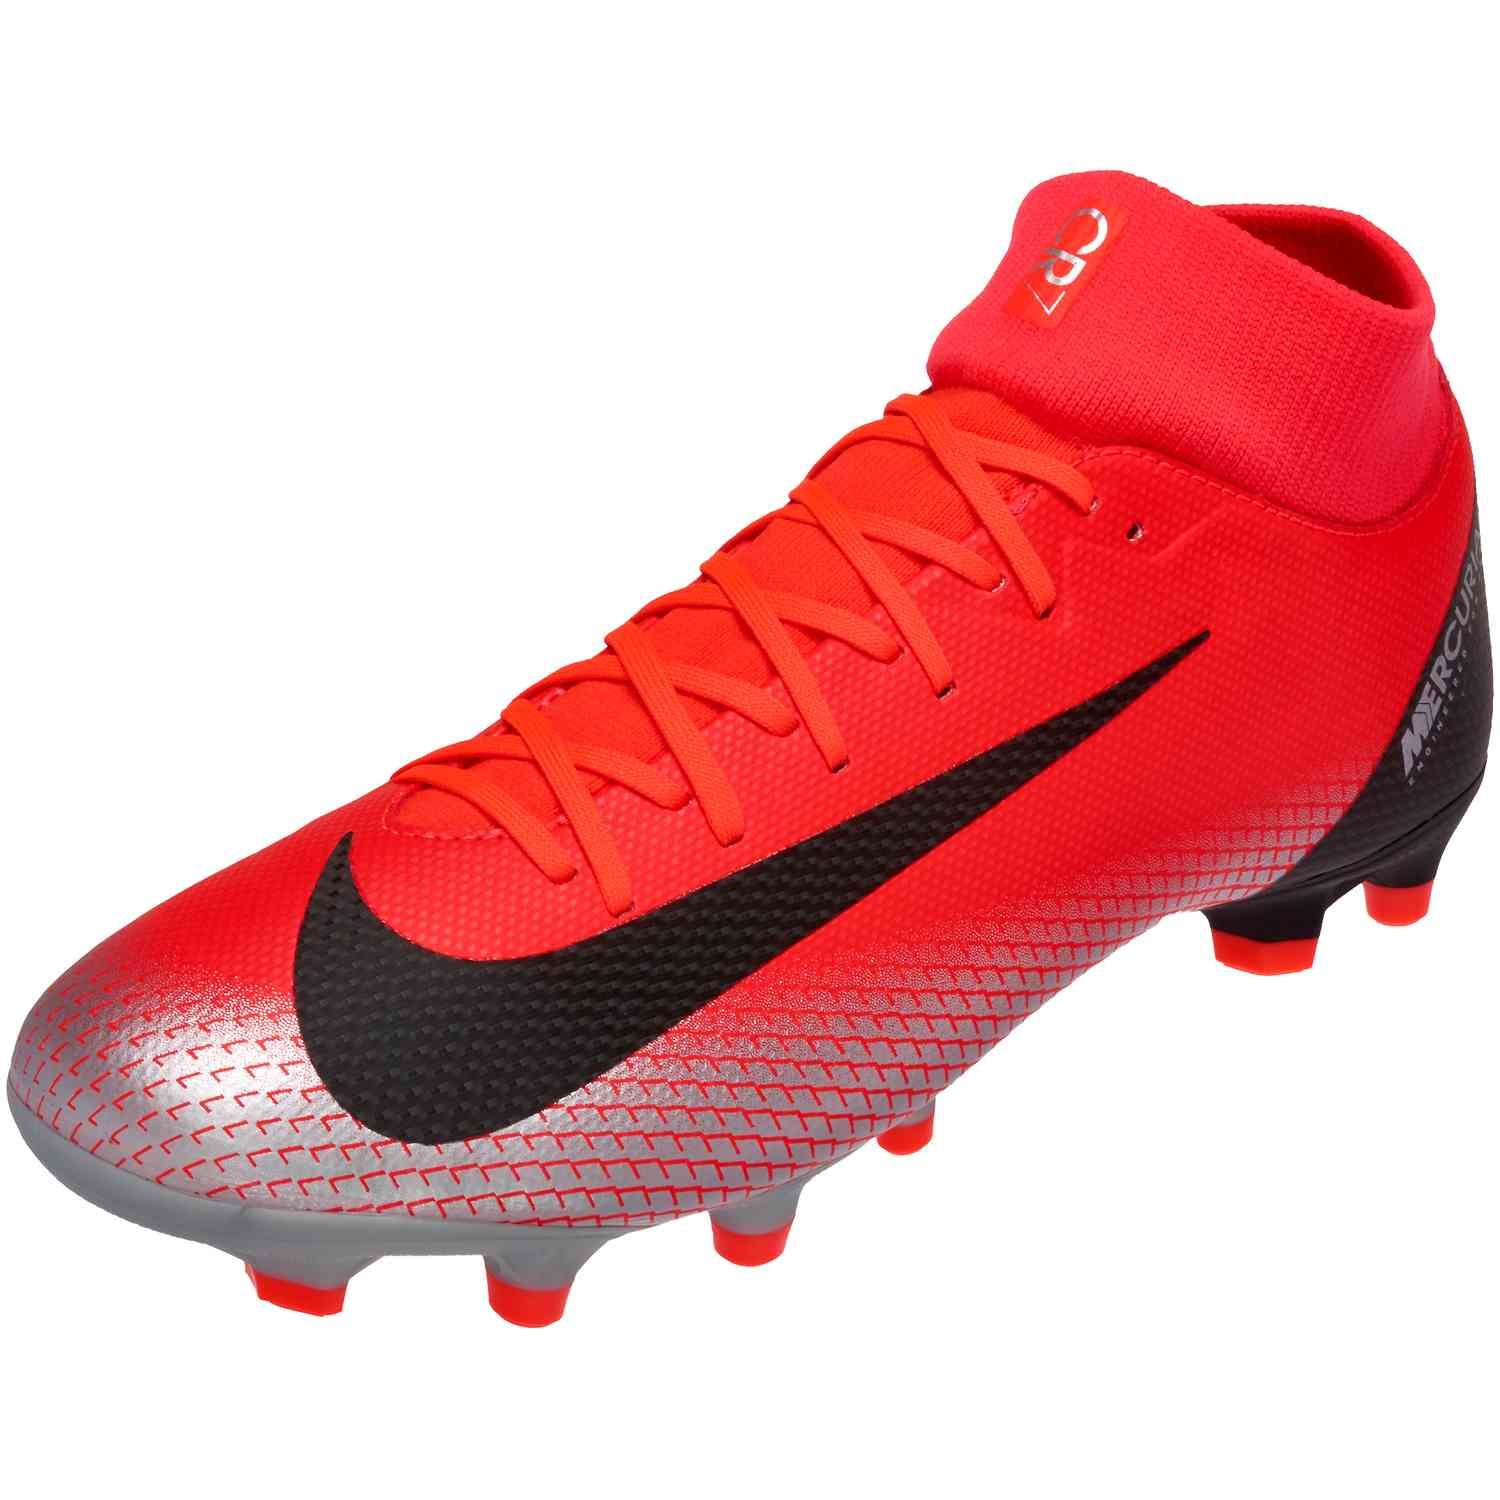 Nike Cr7 Superfly Academy Fg Cleats The Final Chapter Get These Shoes At Soccerpro Right Now Soccer Boots Soccer Cleats Superfly Soccer Cleats